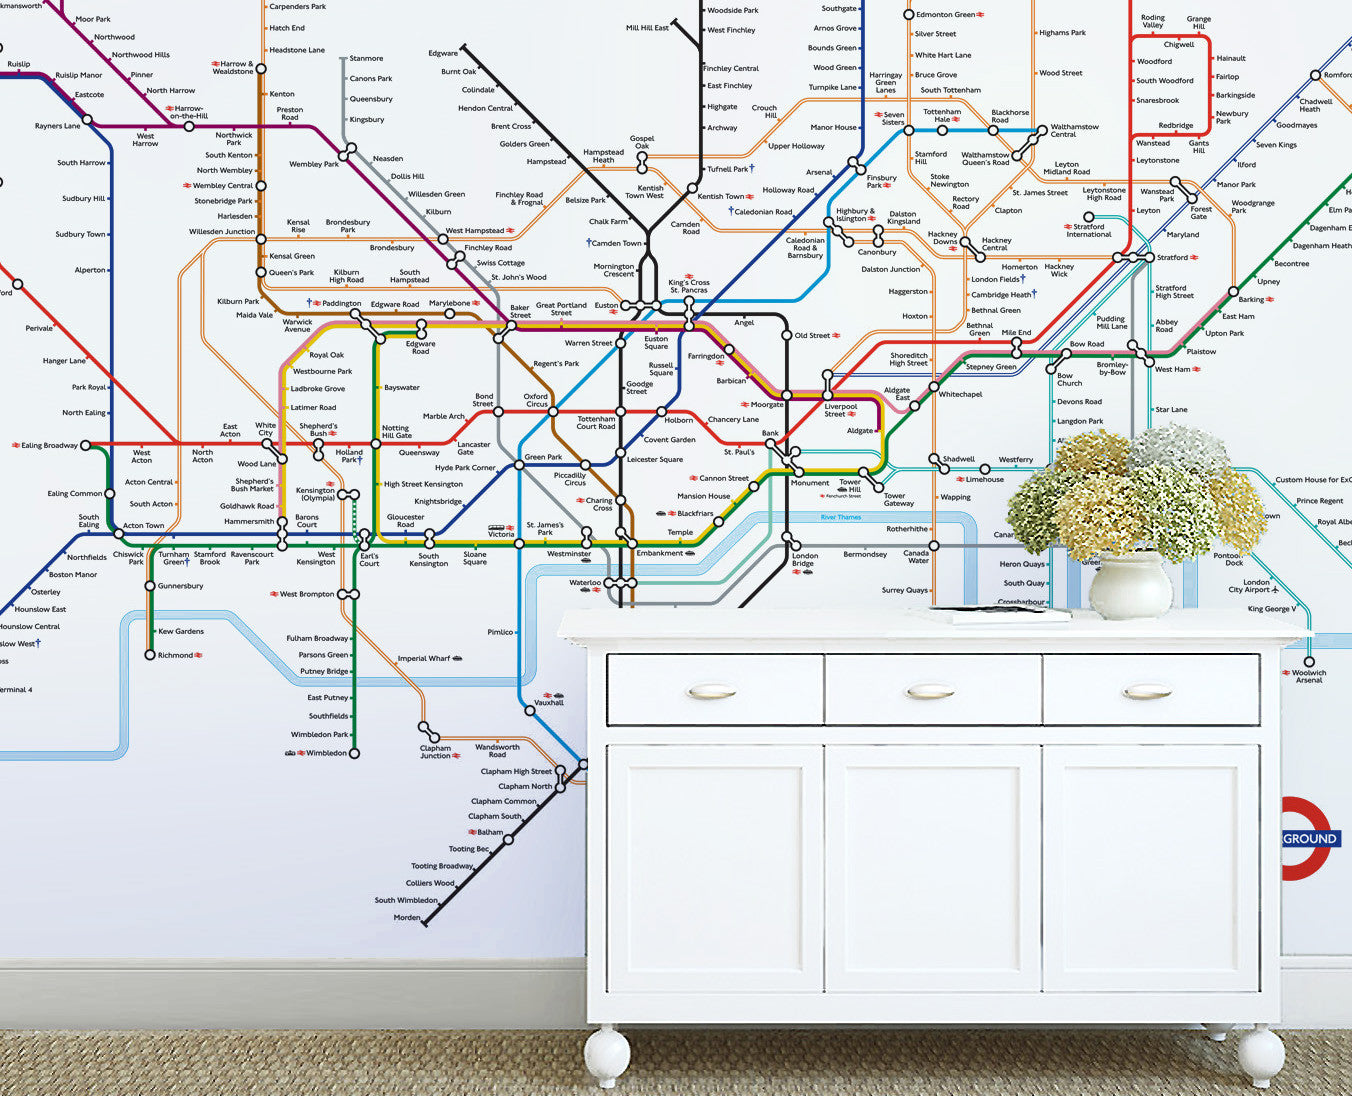 Undeground Map Of London.Map Wallpaper London Underground Map From Love Maps On